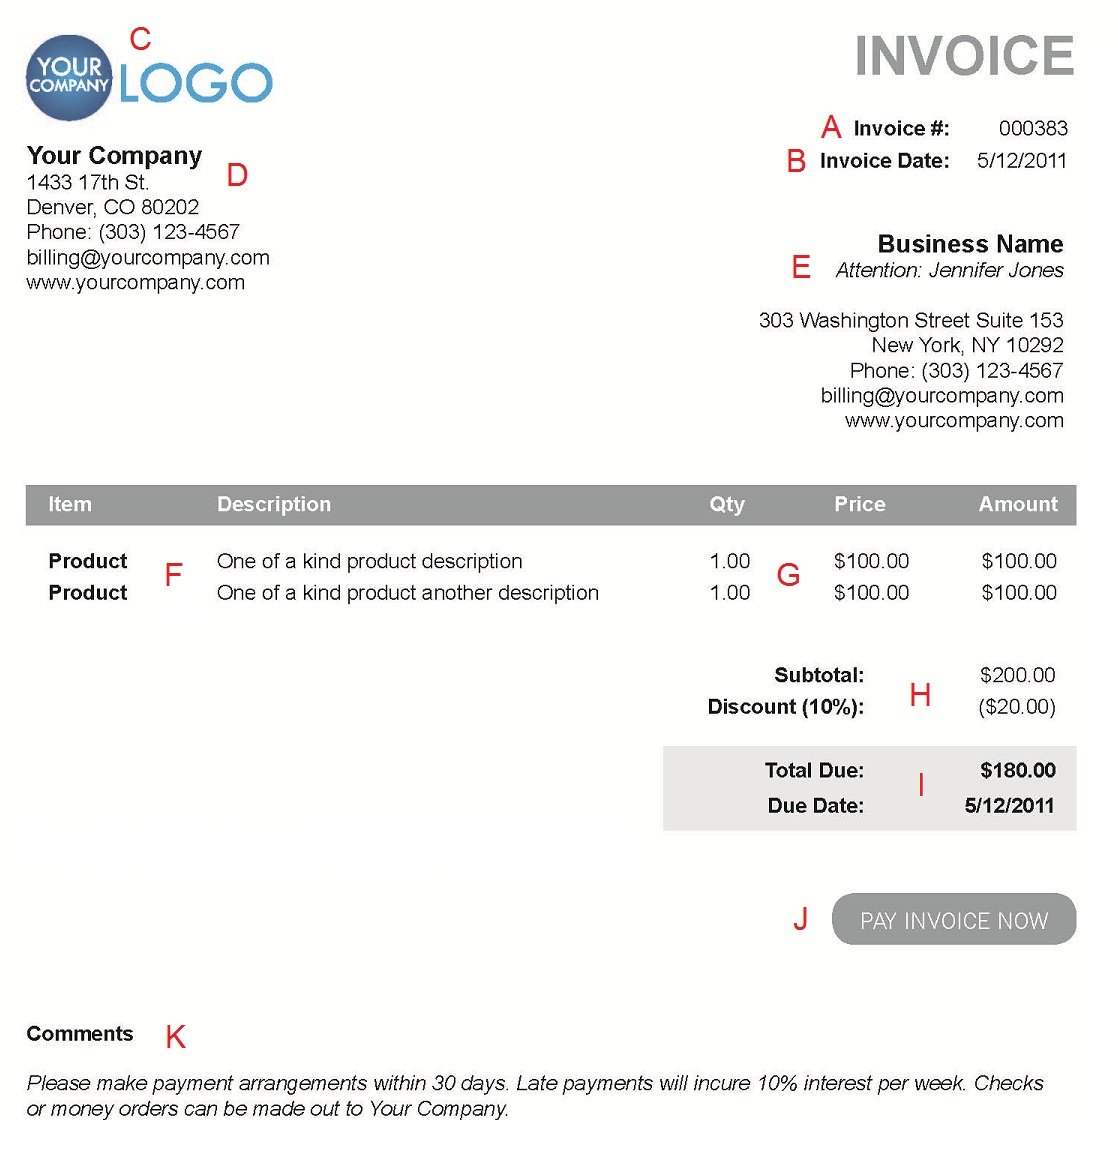 Usdgus  Pleasing The  Different Sections Of An Electronic Payment Invoice With Marvelous A  With Astounding Google Invoice Template Free Also Dhl Proforma Invoice Template In Addition Invoice Finance Providers And Performance Invoice Template As Well As Business Invoice Books Additionally Make Your Own Invoice Online From Paysimplecom With Usdgus  Marvelous The  Different Sections Of An Electronic Payment Invoice With Astounding A  And Pleasing Google Invoice Template Free Also Dhl Proforma Invoice Template In Addition Invoice Finance Providers From Paysimplecom